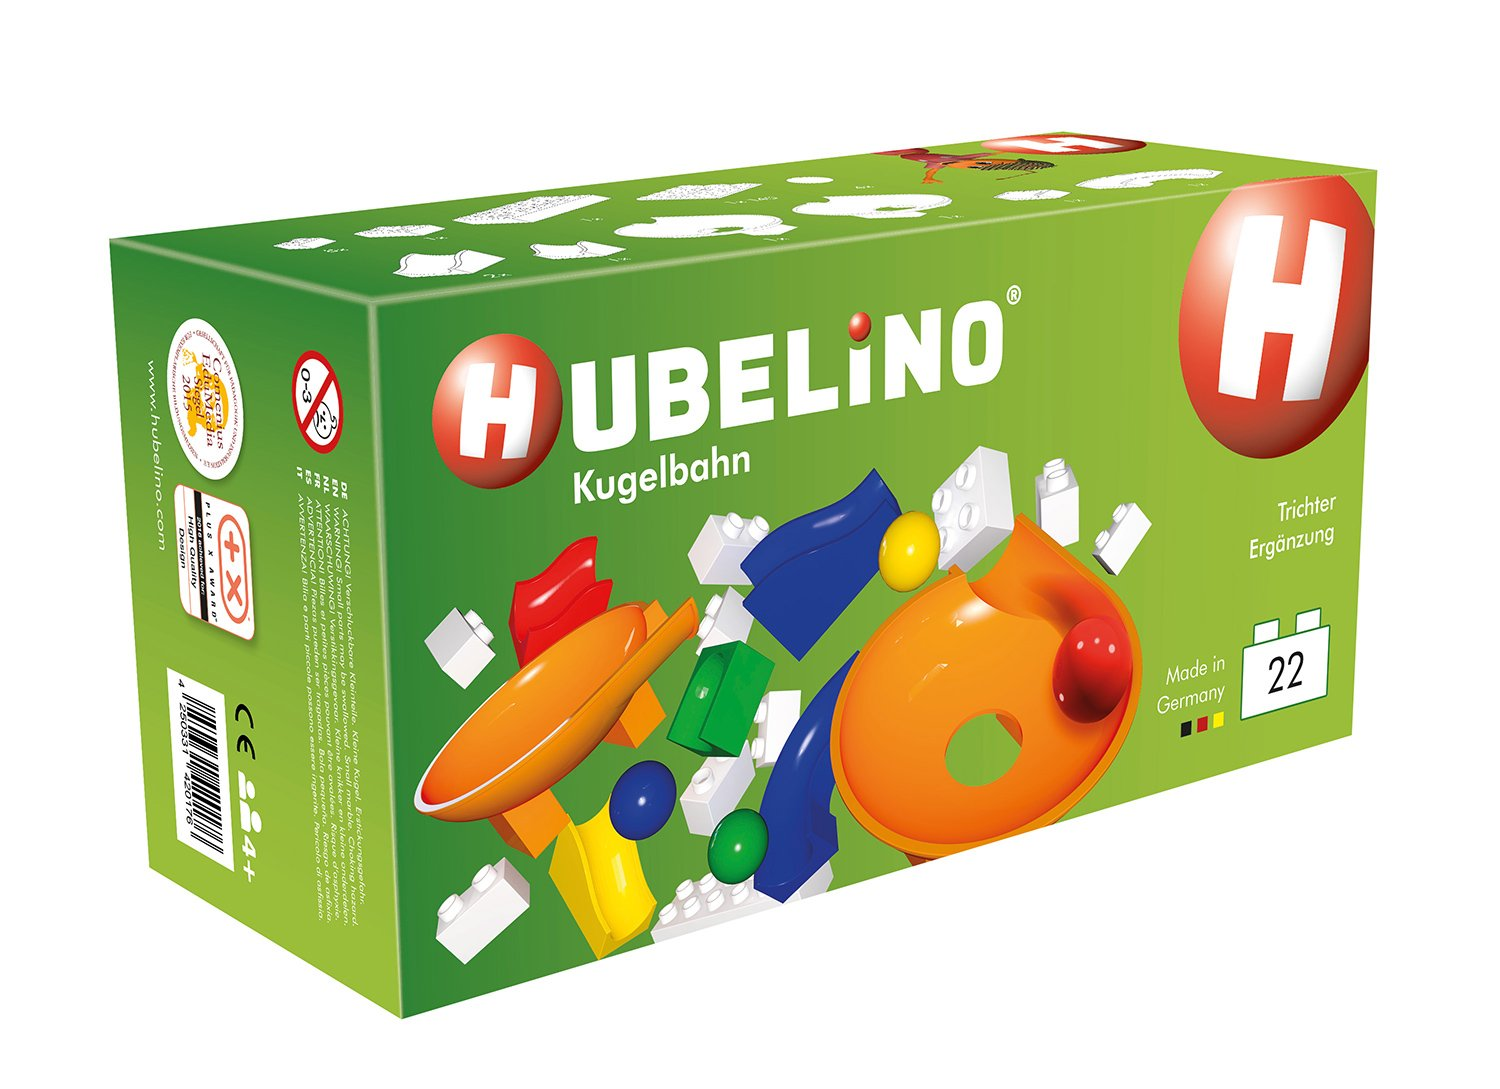 HUBELINO Marble Run - 22-Piece Twister Expansion Set - the Original! Made in Germany! - Certified and Award-Winning Marble Run - 100% compatible with Duplo Review